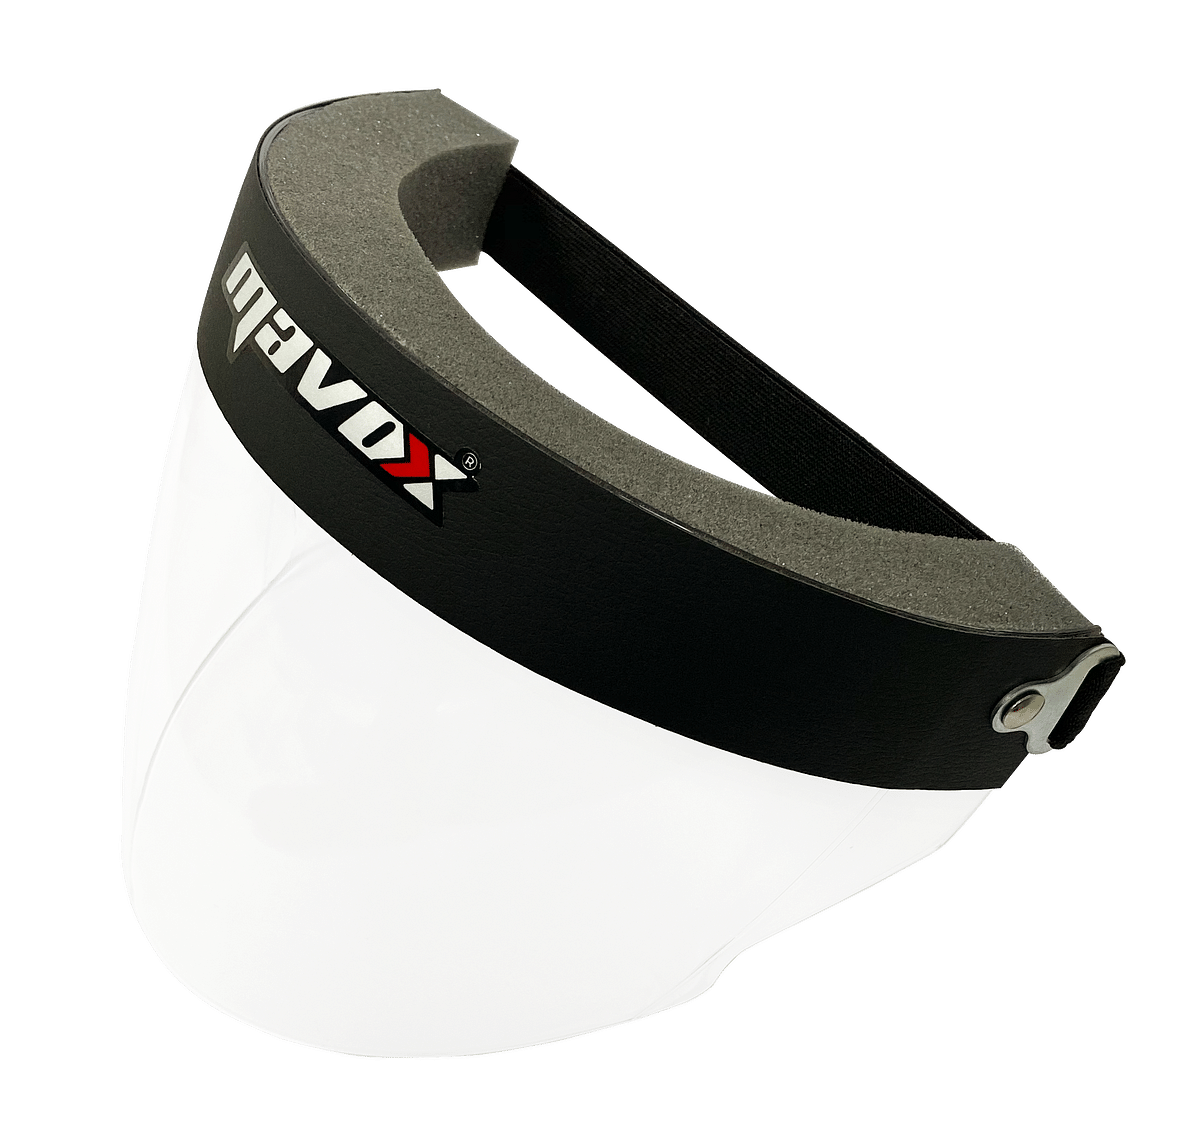 Mavox Helmets introduces face shields to fight COVID-19 pandemic